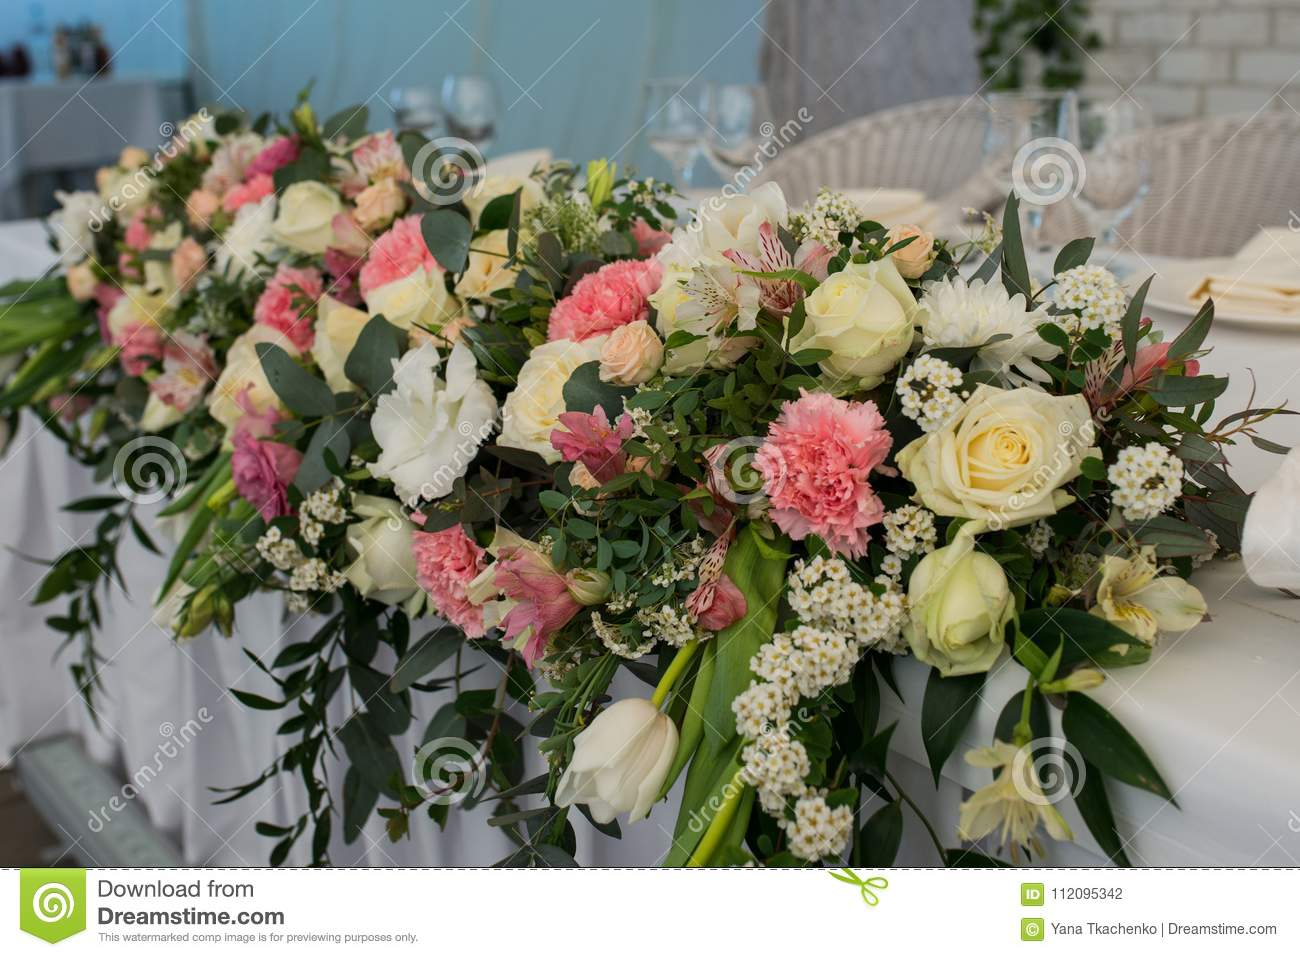 Rustic Flower Arrangement With White And Pink Flowers At A Wedding